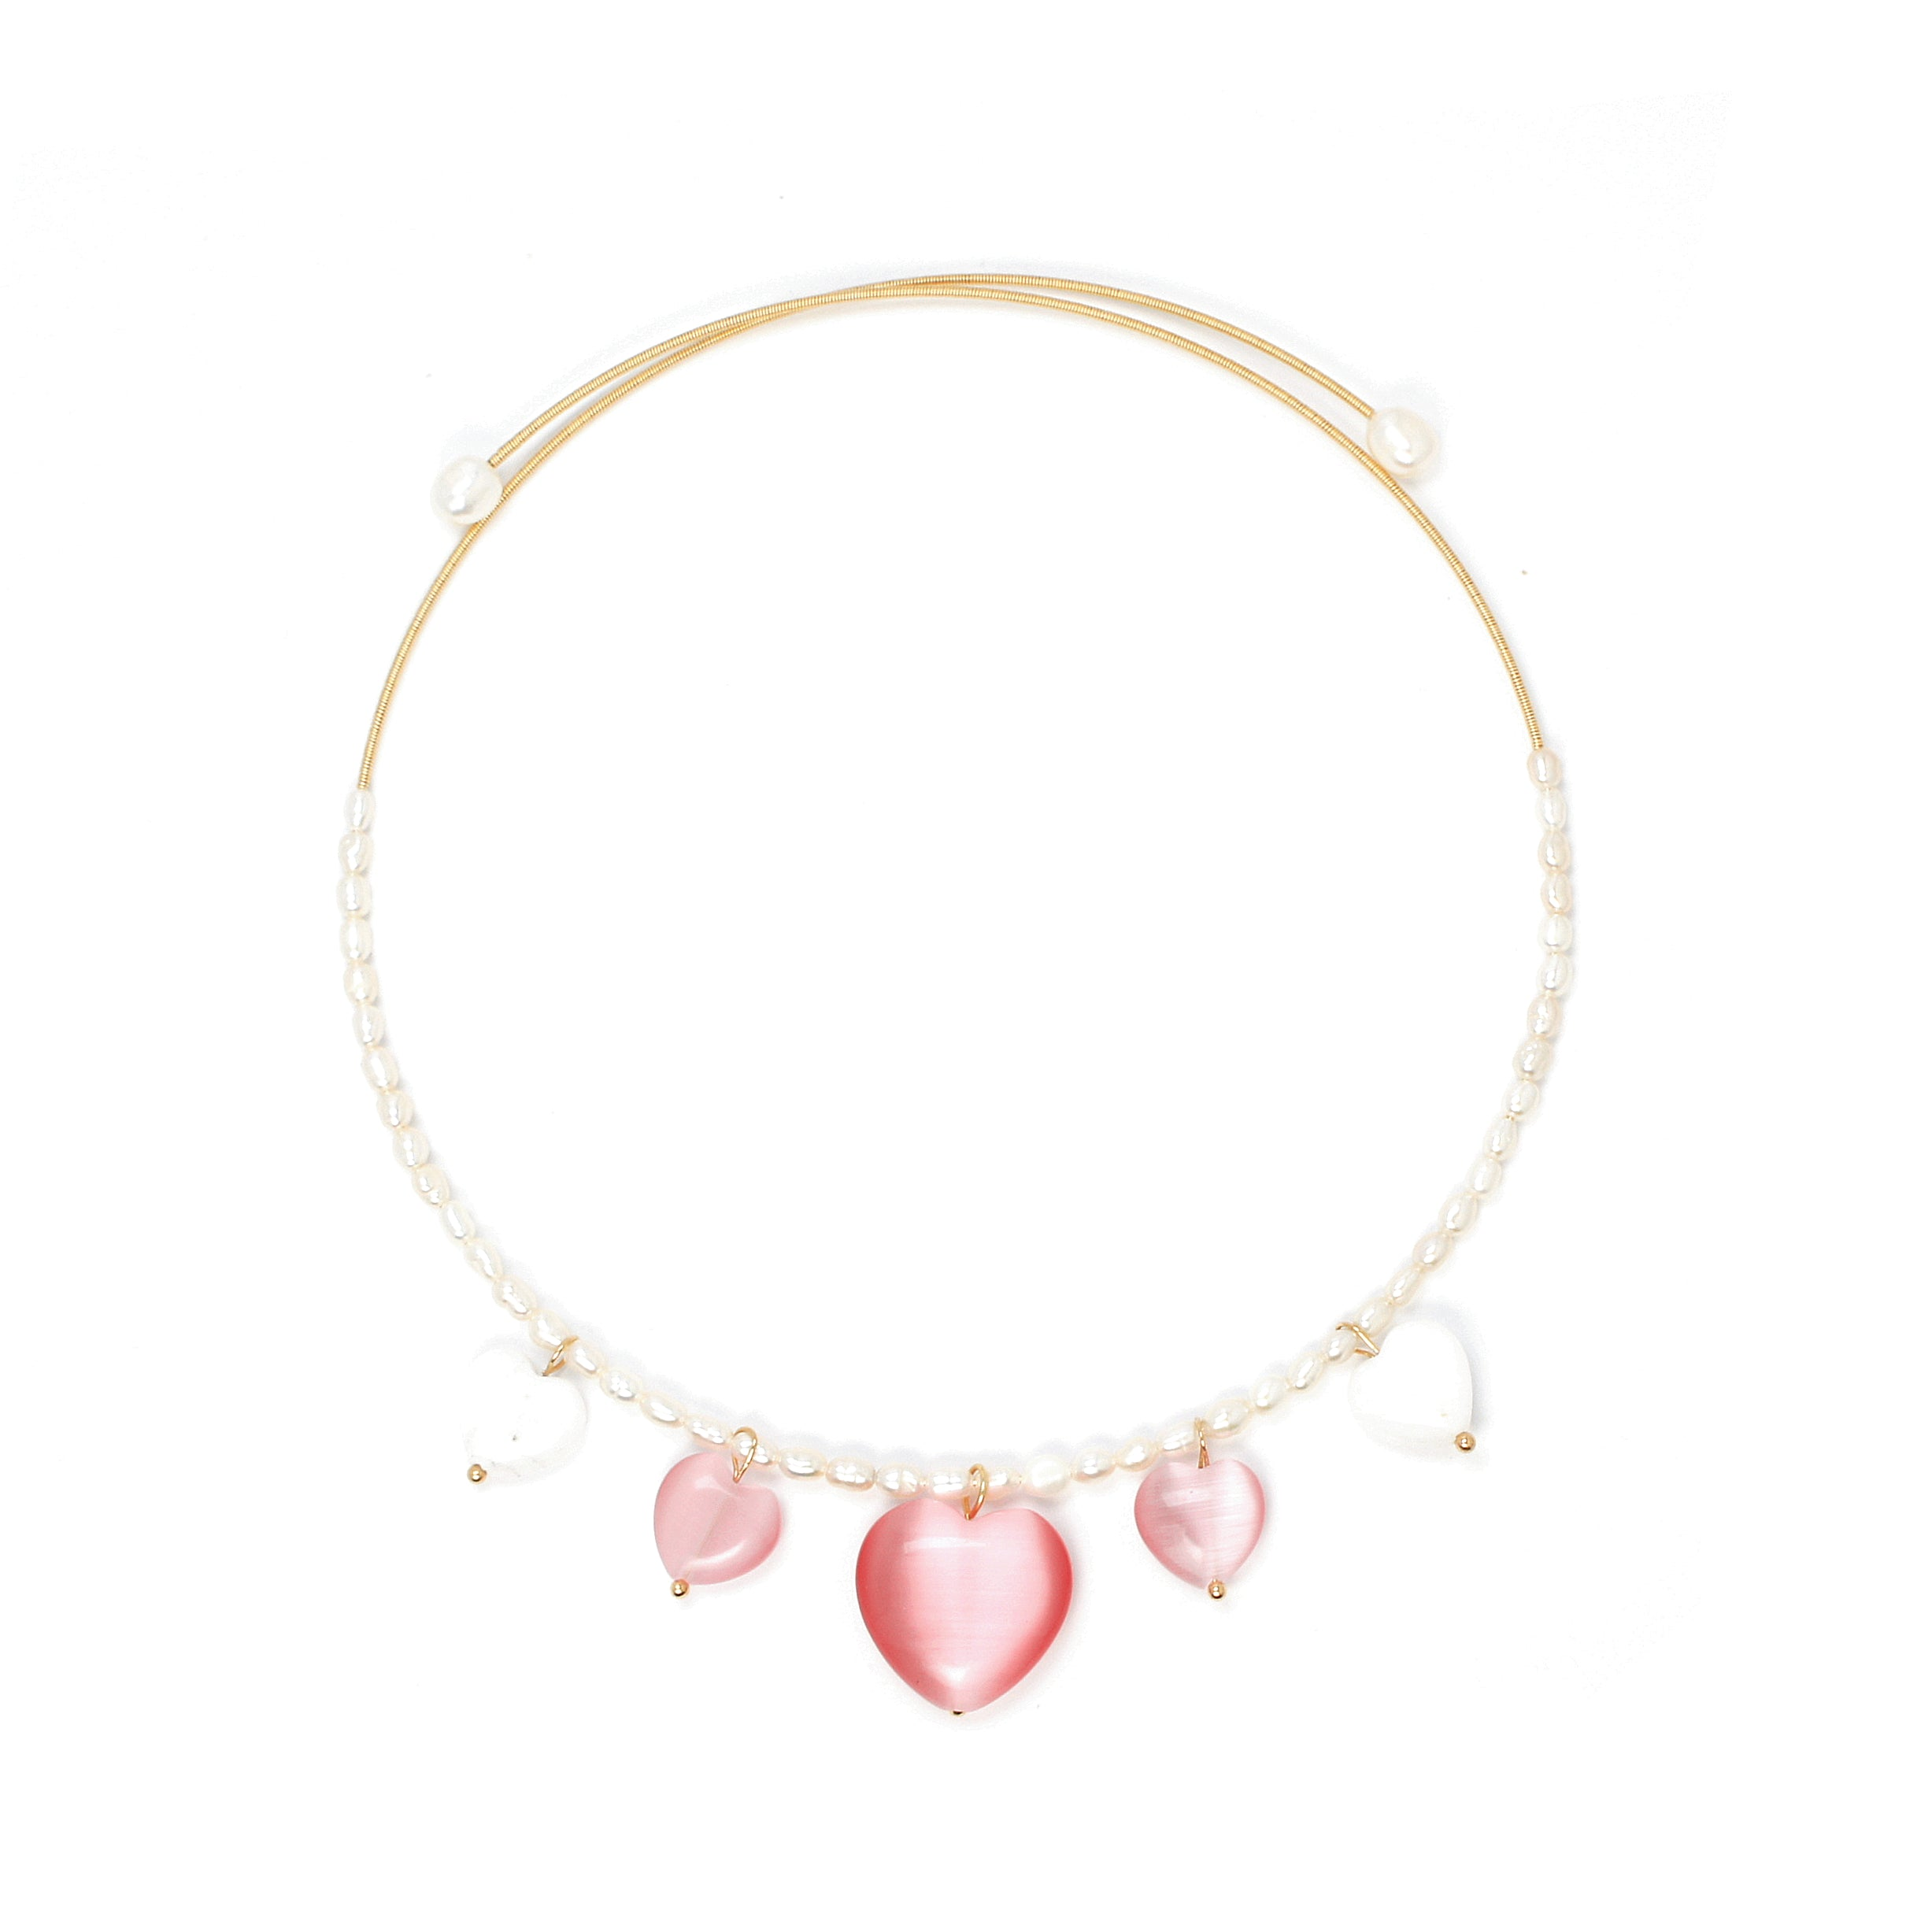 Serenity Freshwater Pearl Open Choker Necklace with Heart Charms